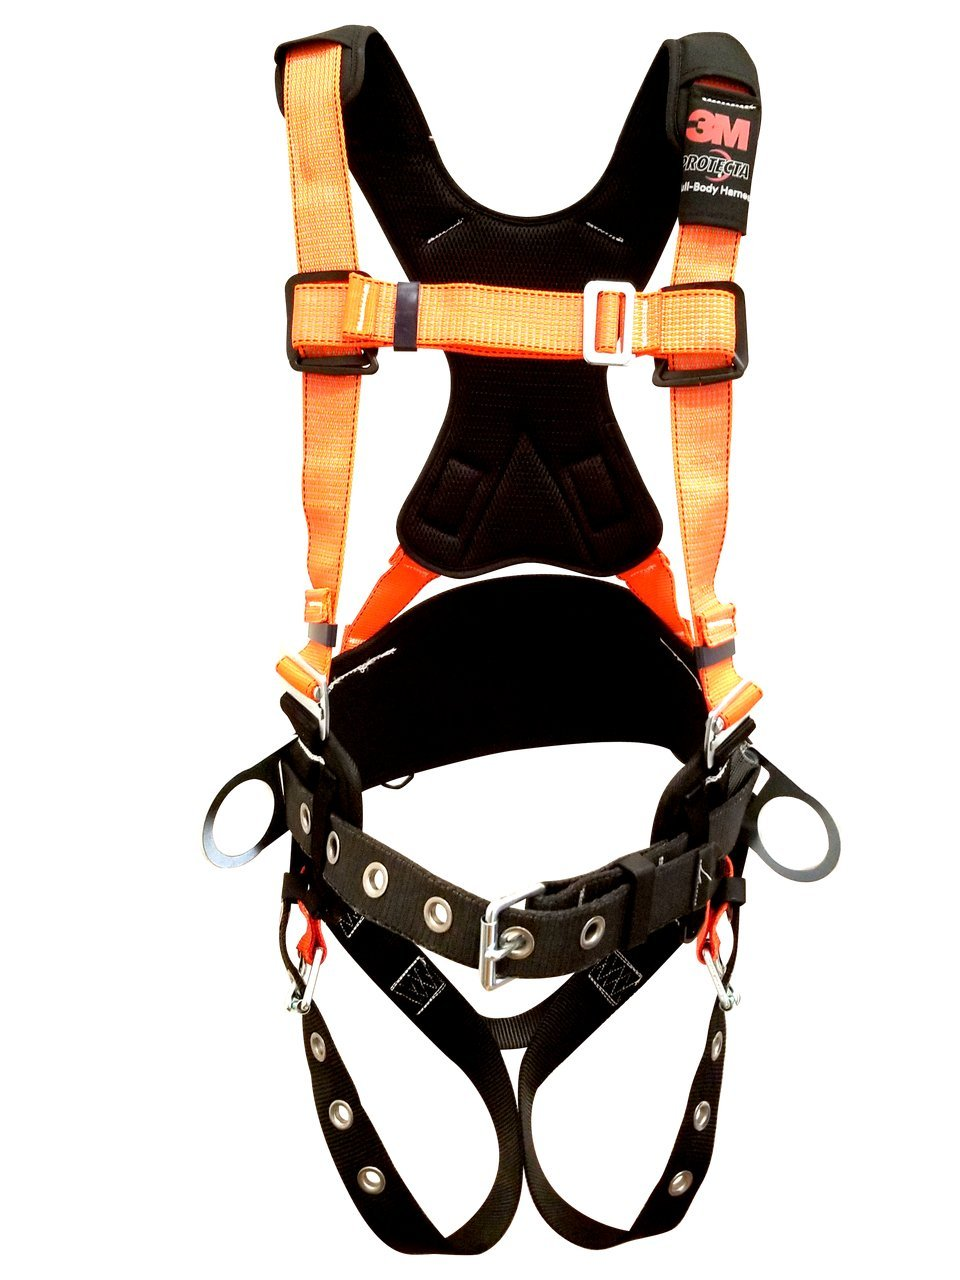 3M Protecta PRO Comfort Harness With Reflective Webbing and Reinforced Belt Size Medium/Large